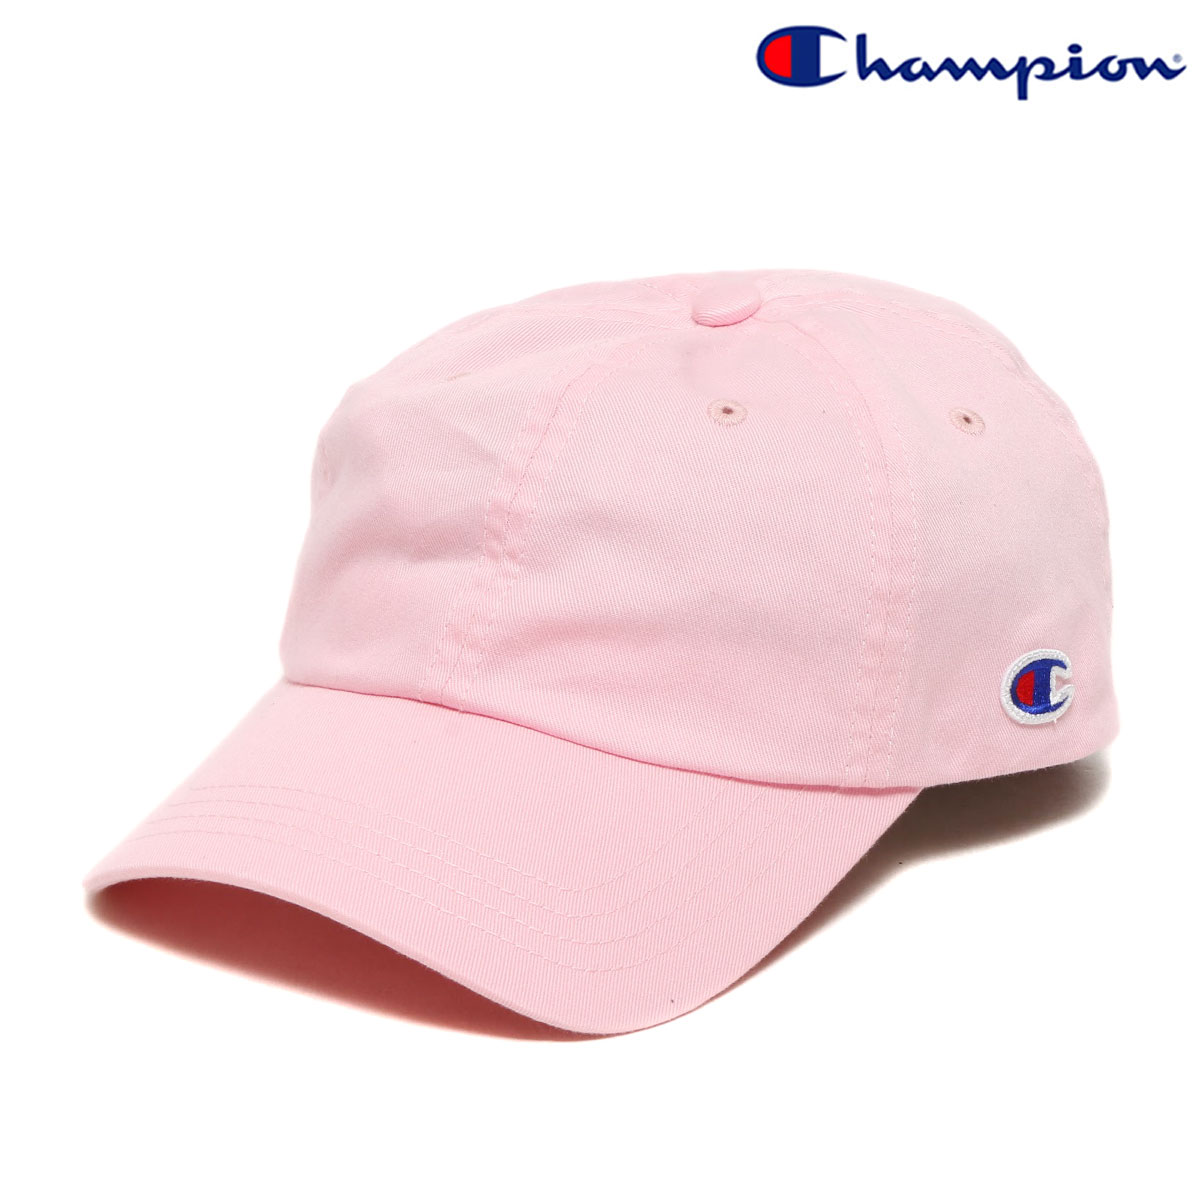 d25034cb33a atmos pink  Champion CP low cap (champion CP low cap) (pink ...